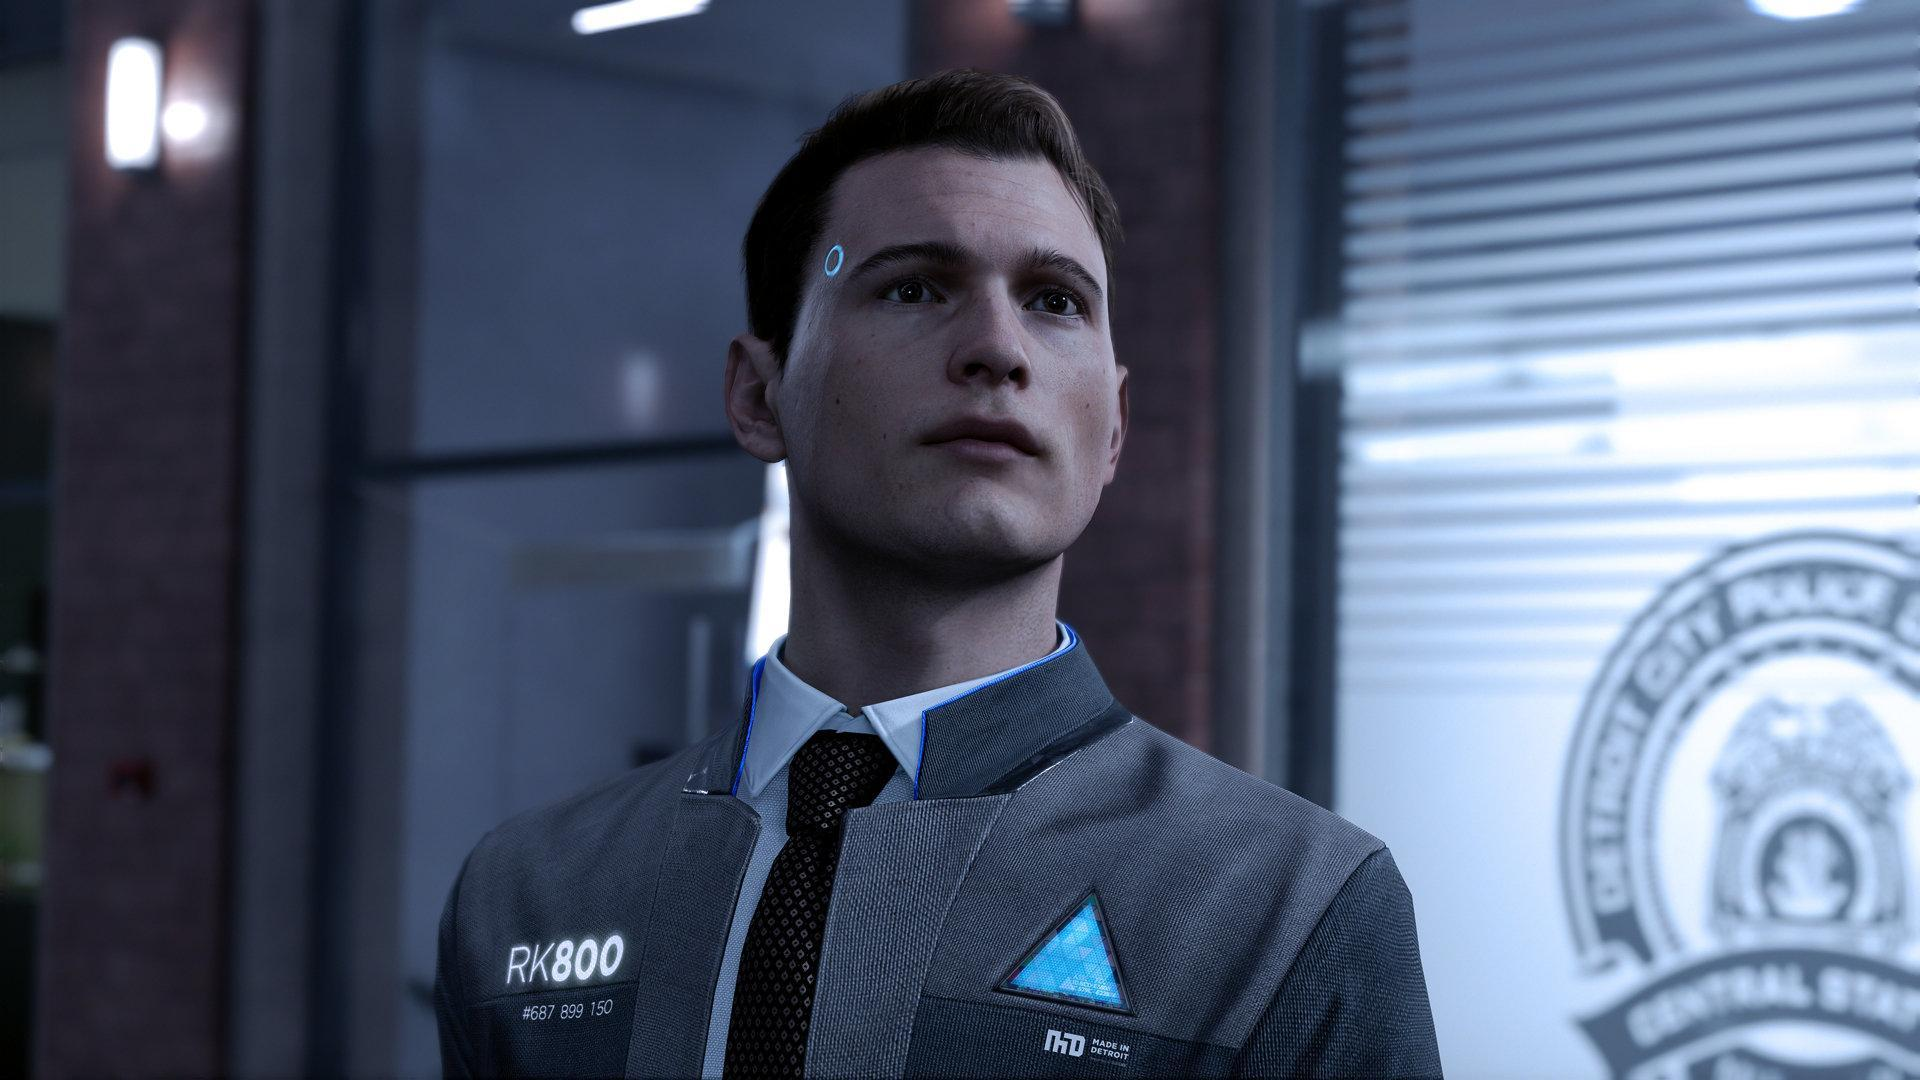 Connor/RK800 - D:BH